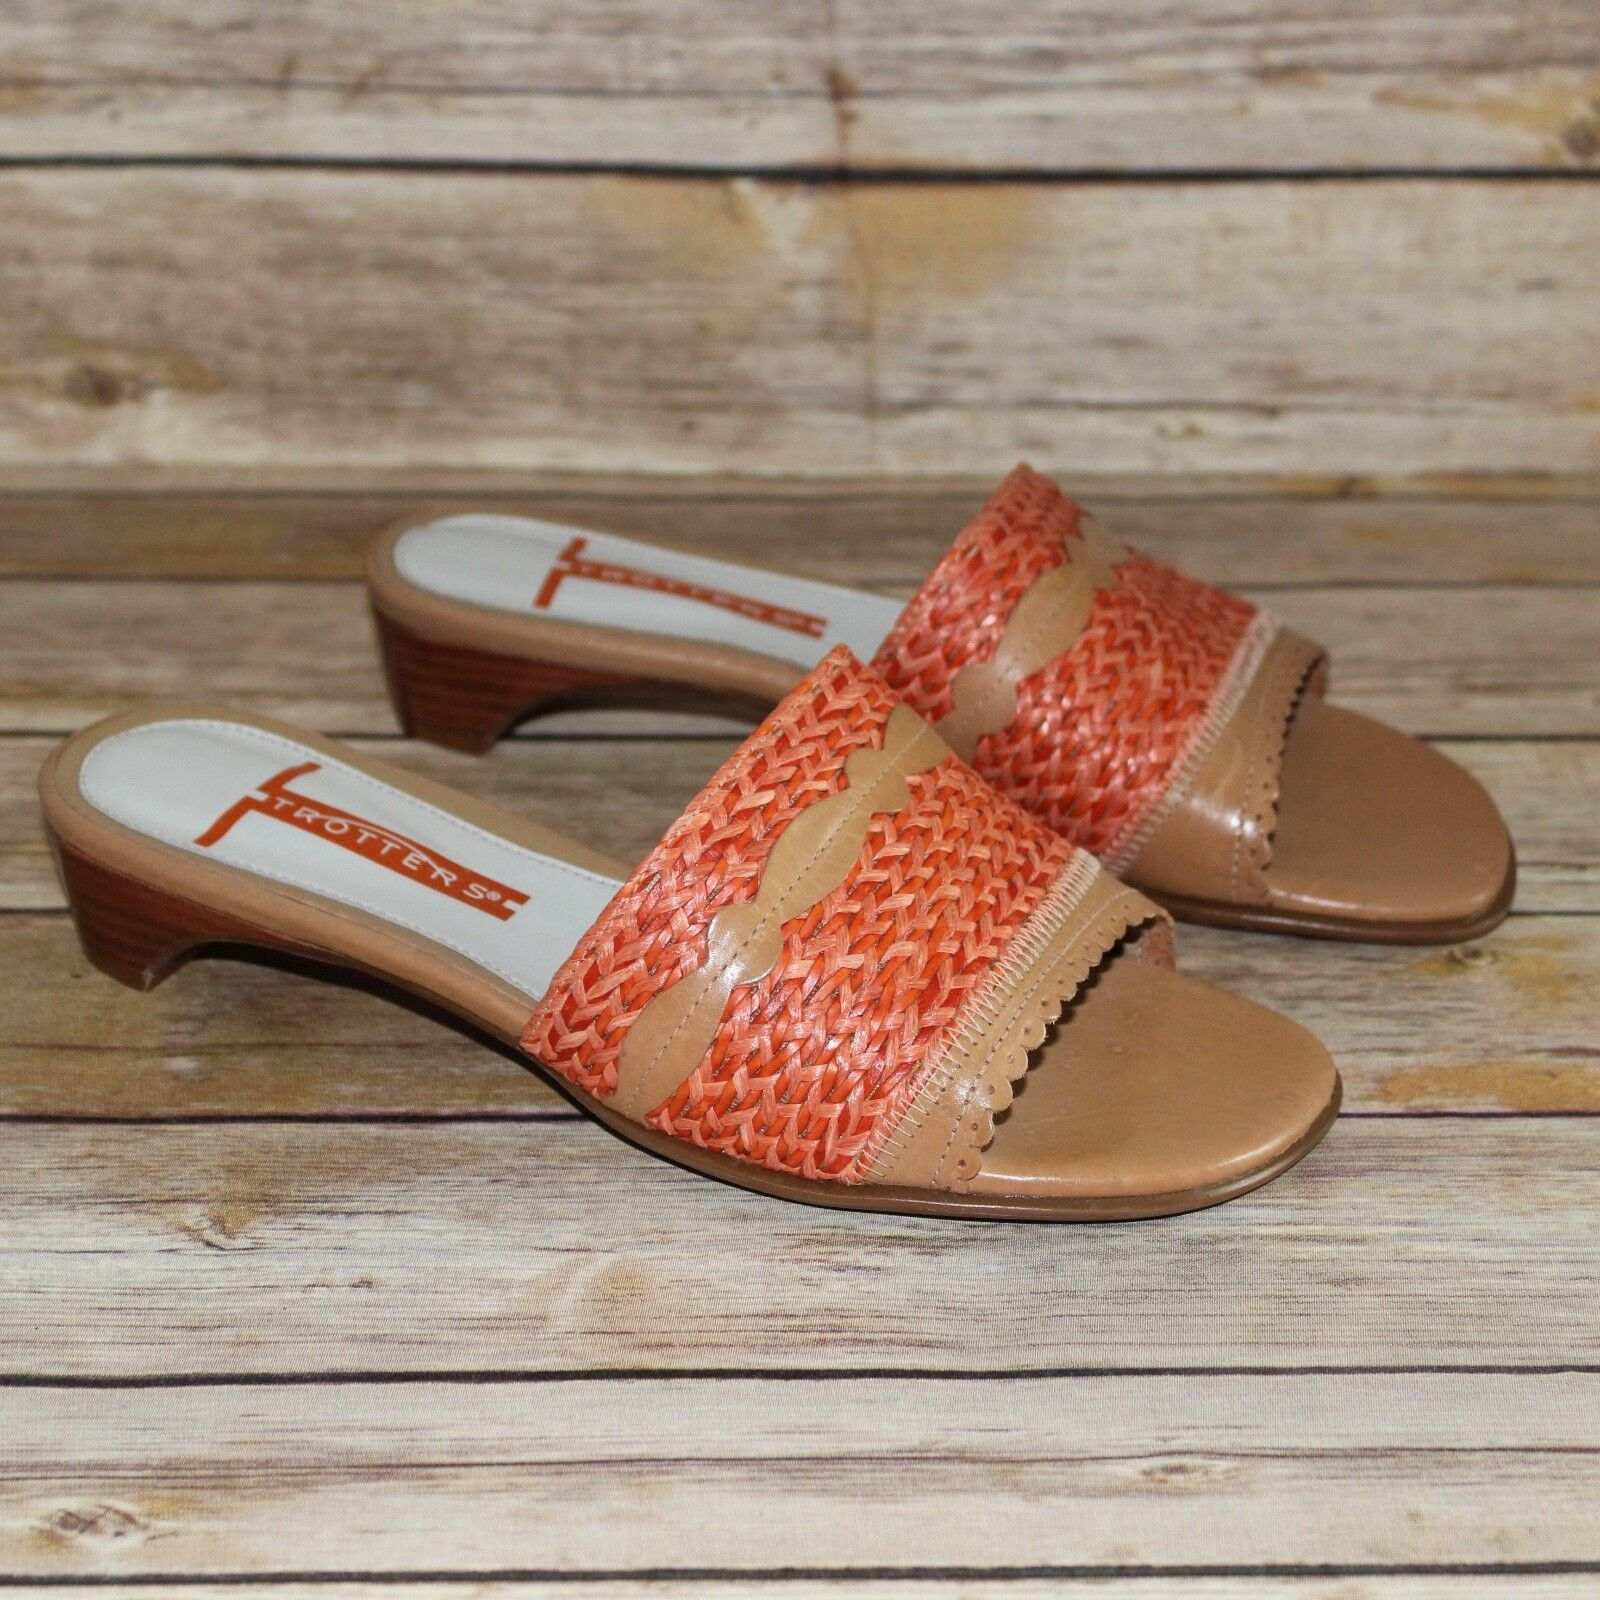 New Tredters Brown Leather orange Woven Straw Slides Sandals Heels shoes 6.5WW